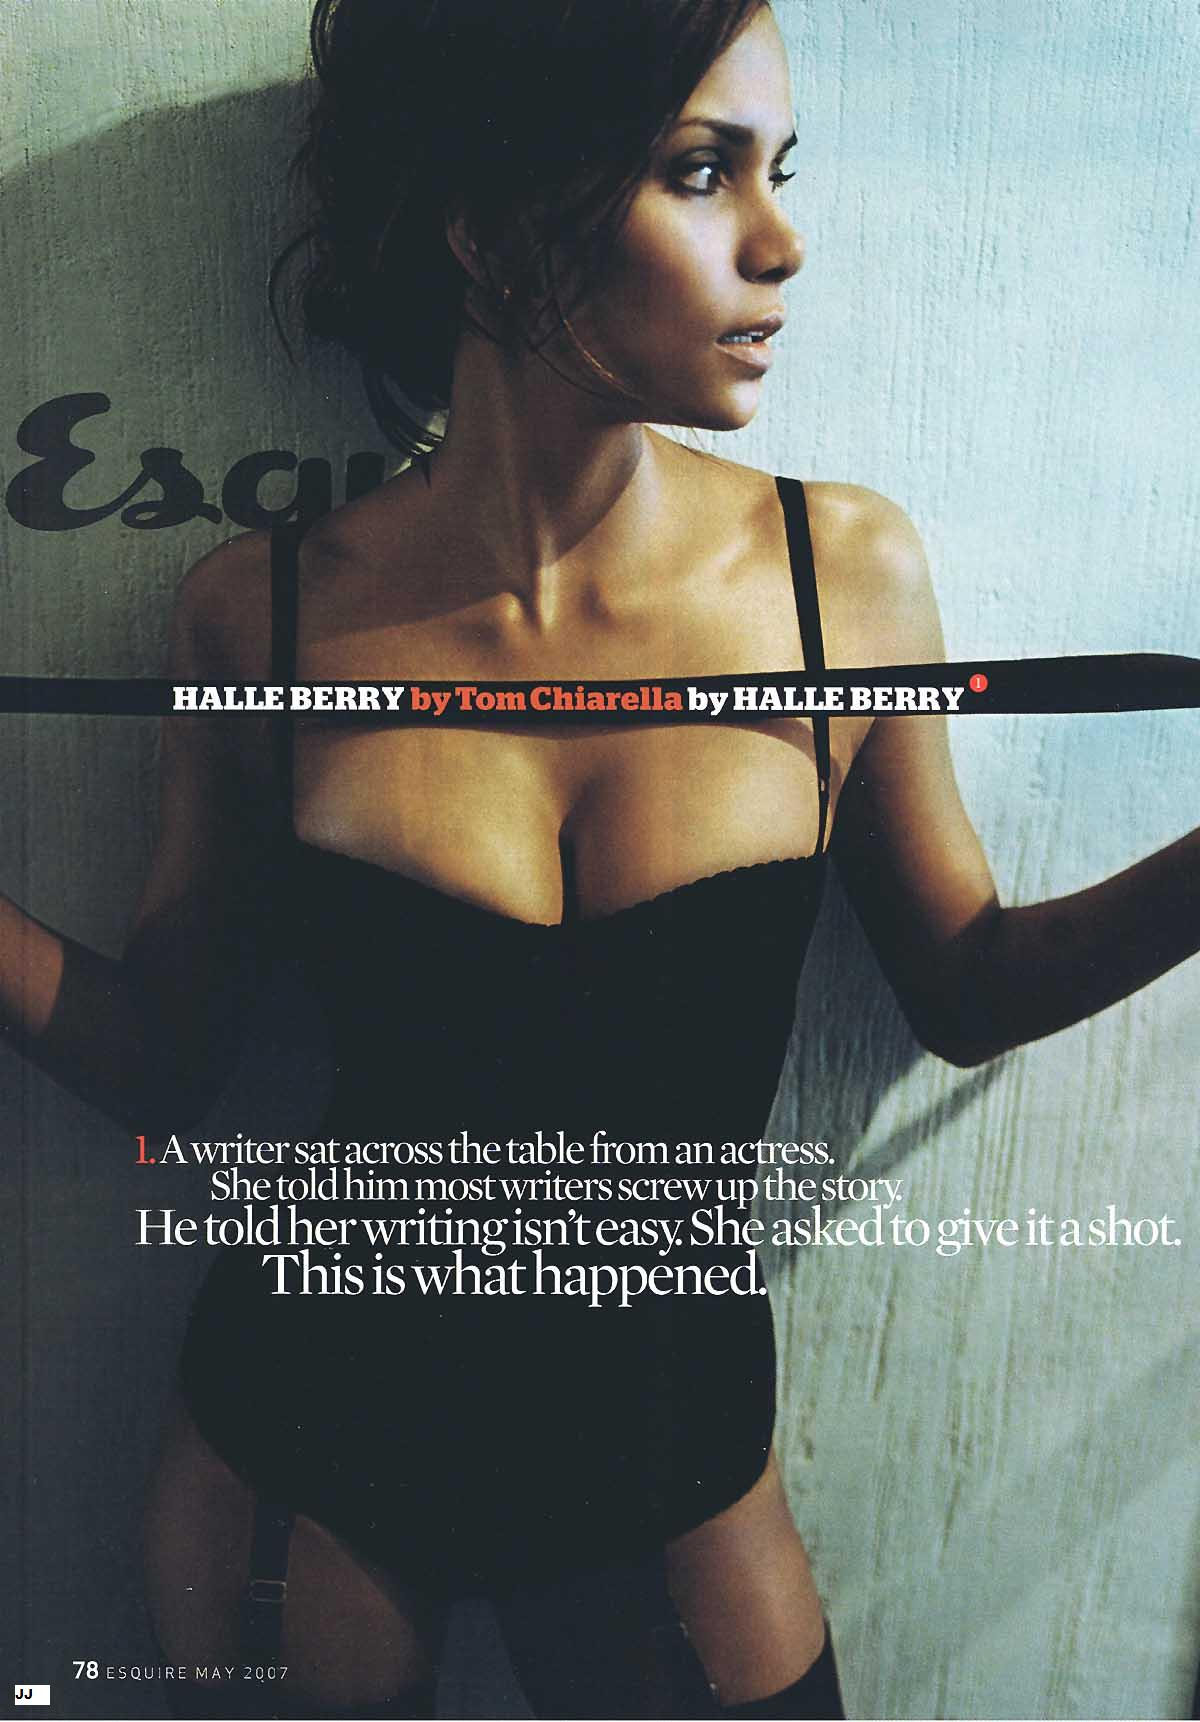 38184_Halle_Berry_Esquire_May_2007_02_www.hqparadise.hu_123_135lo.jpg